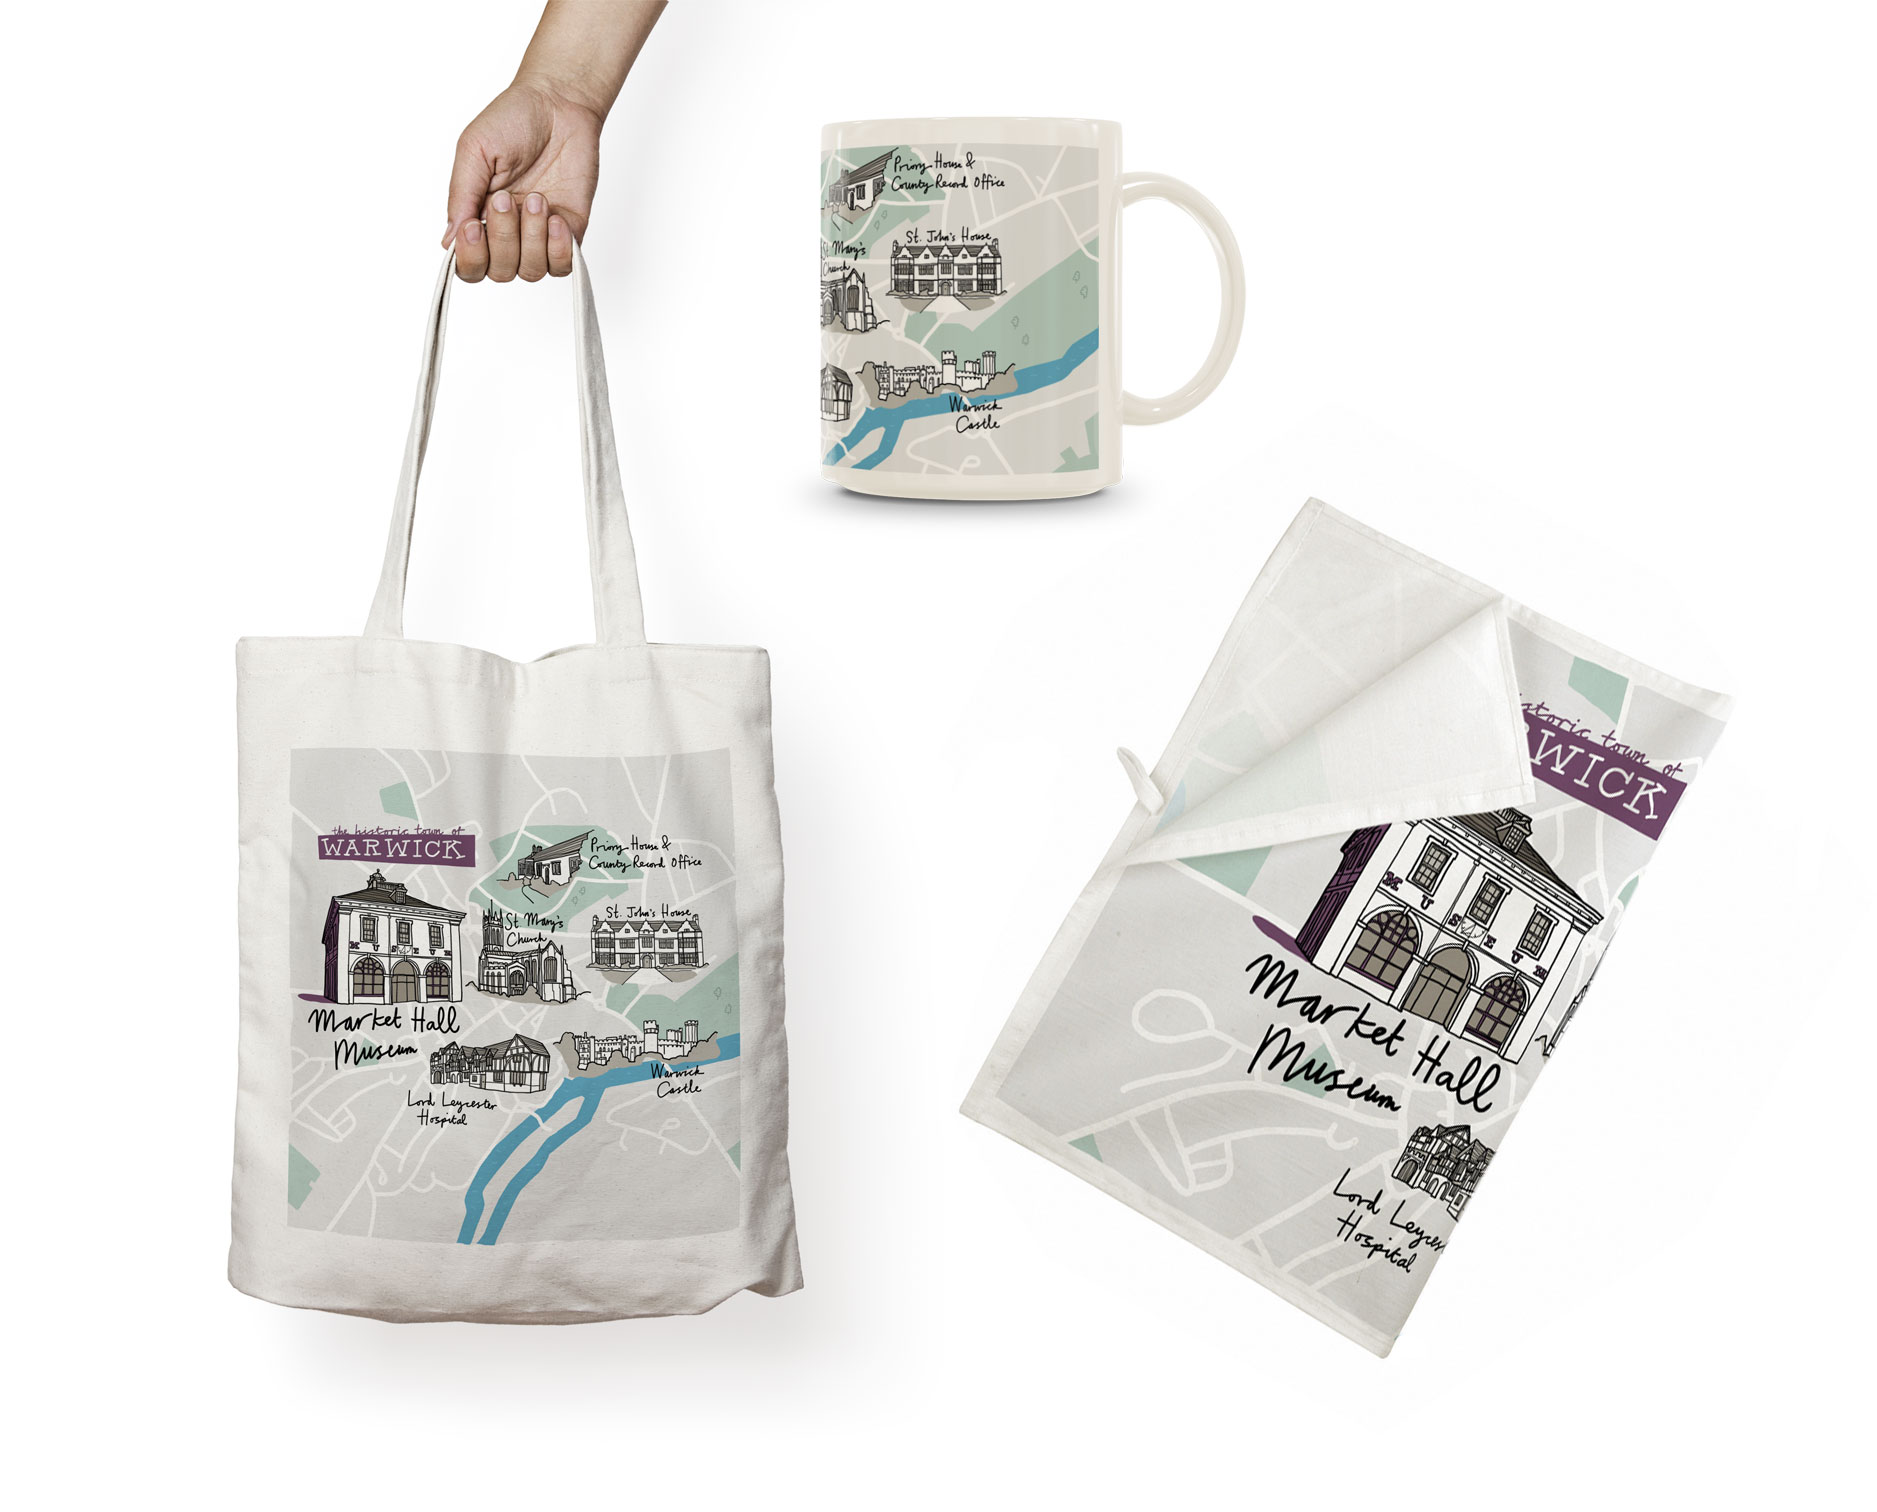 Warwick Museum Map Merchandise Bag Mug Towel